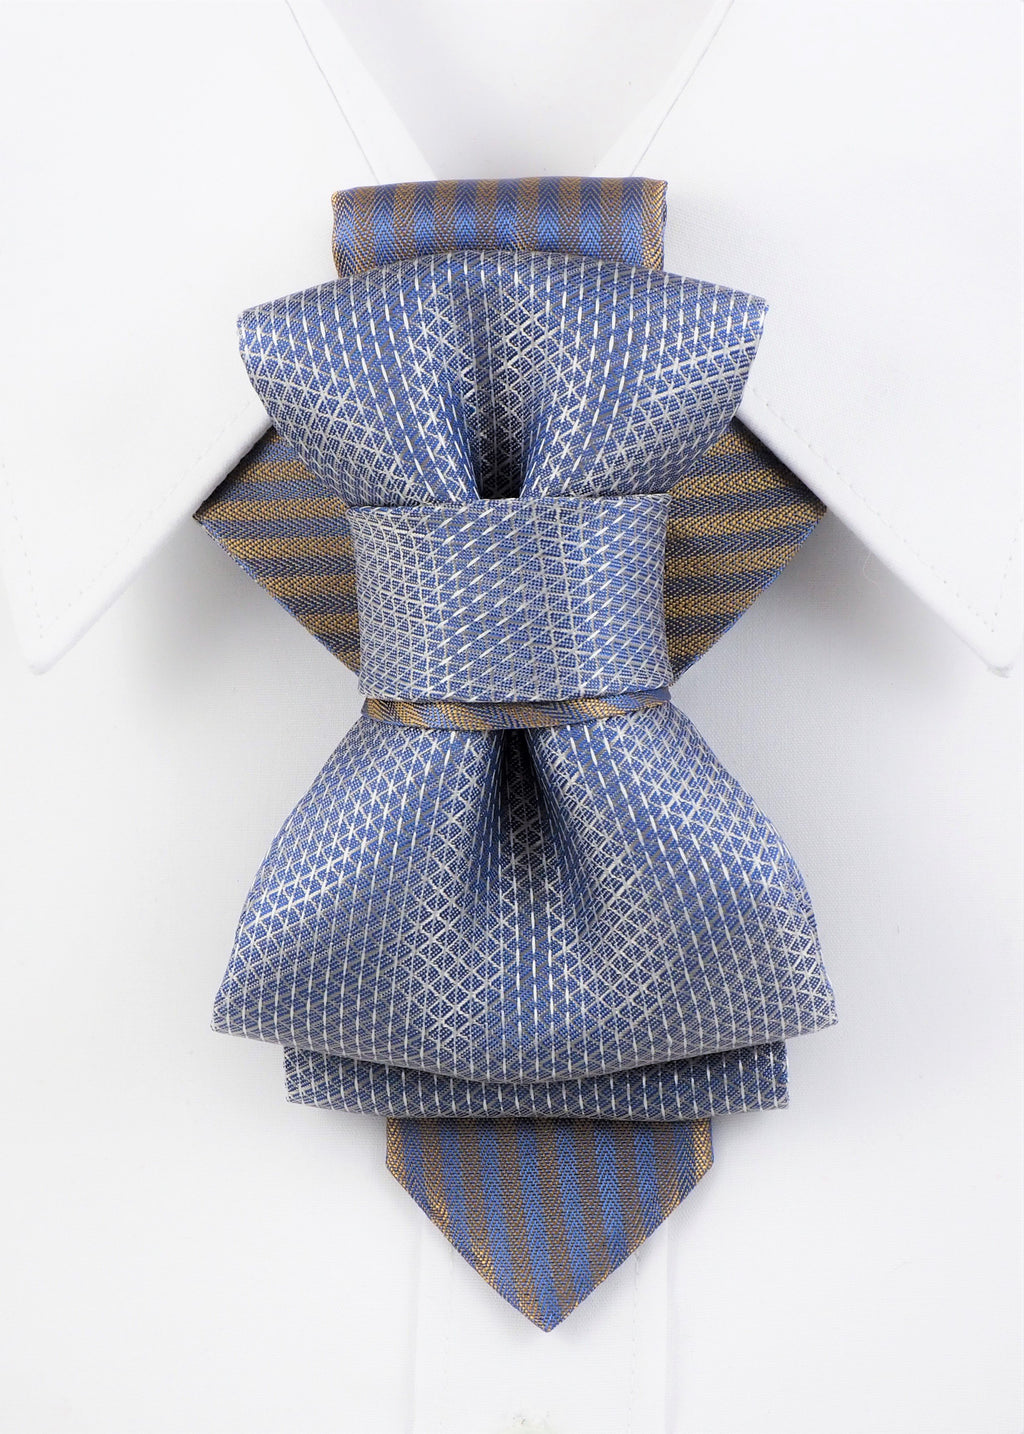 Hopper Bow Tie, Tie for wedding suite HOPPER TIE AINIS hopper tie Bow tie Original design, men's performances, neckties, high-end fashion,  fashion trends, star ties